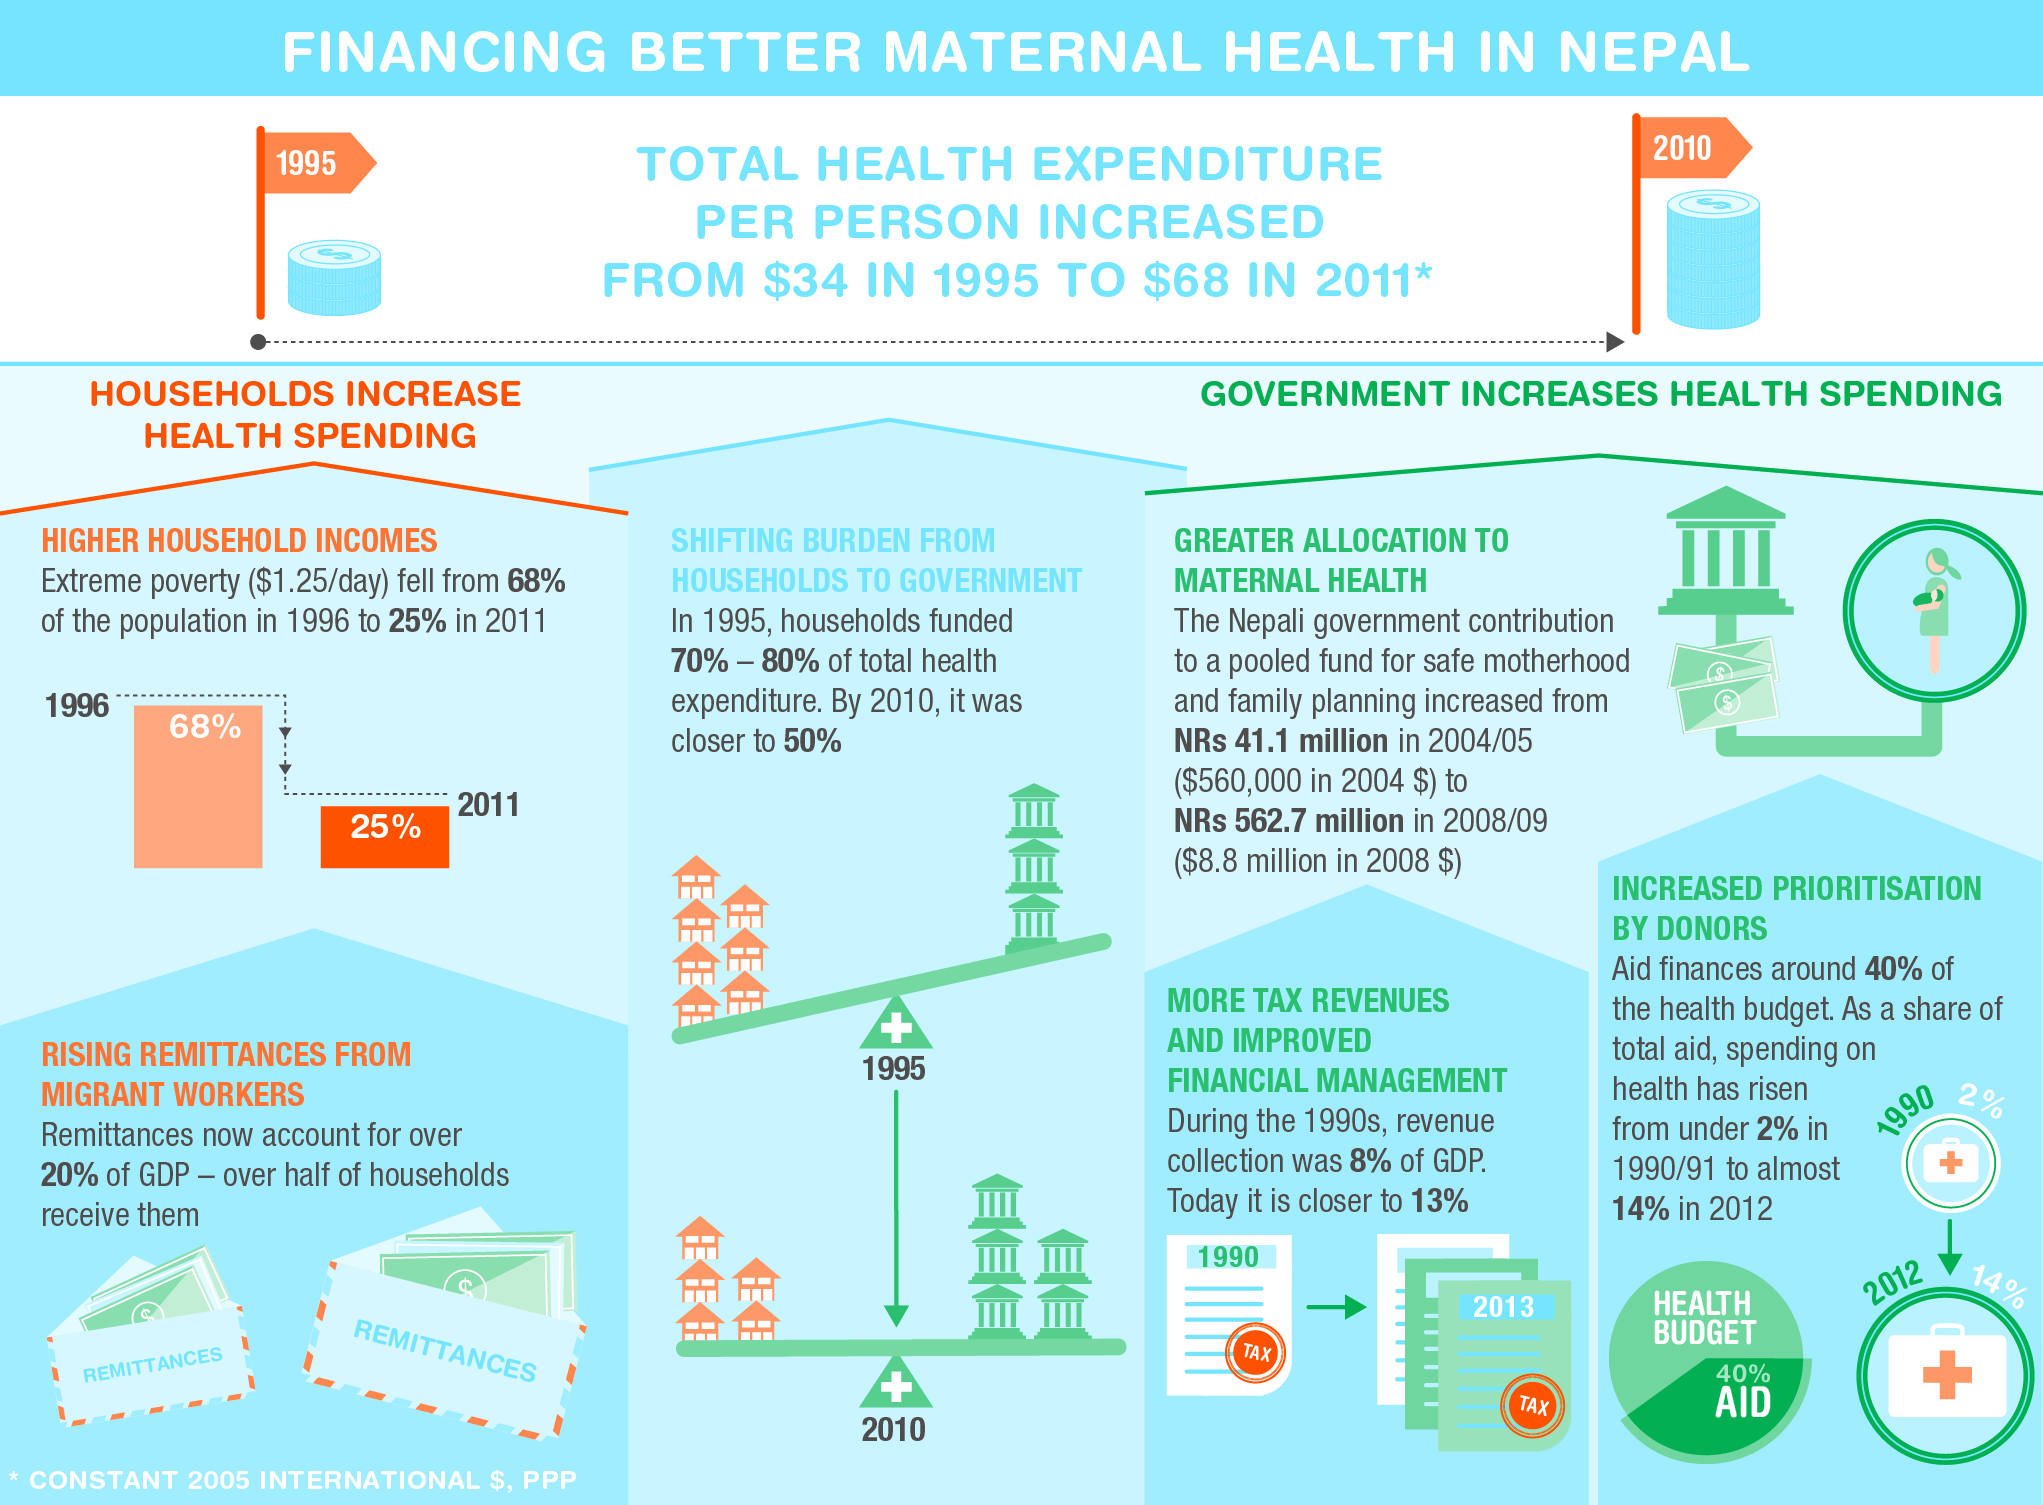 financing-better-maternal-health-in-nepal_5264fabd1cc3f